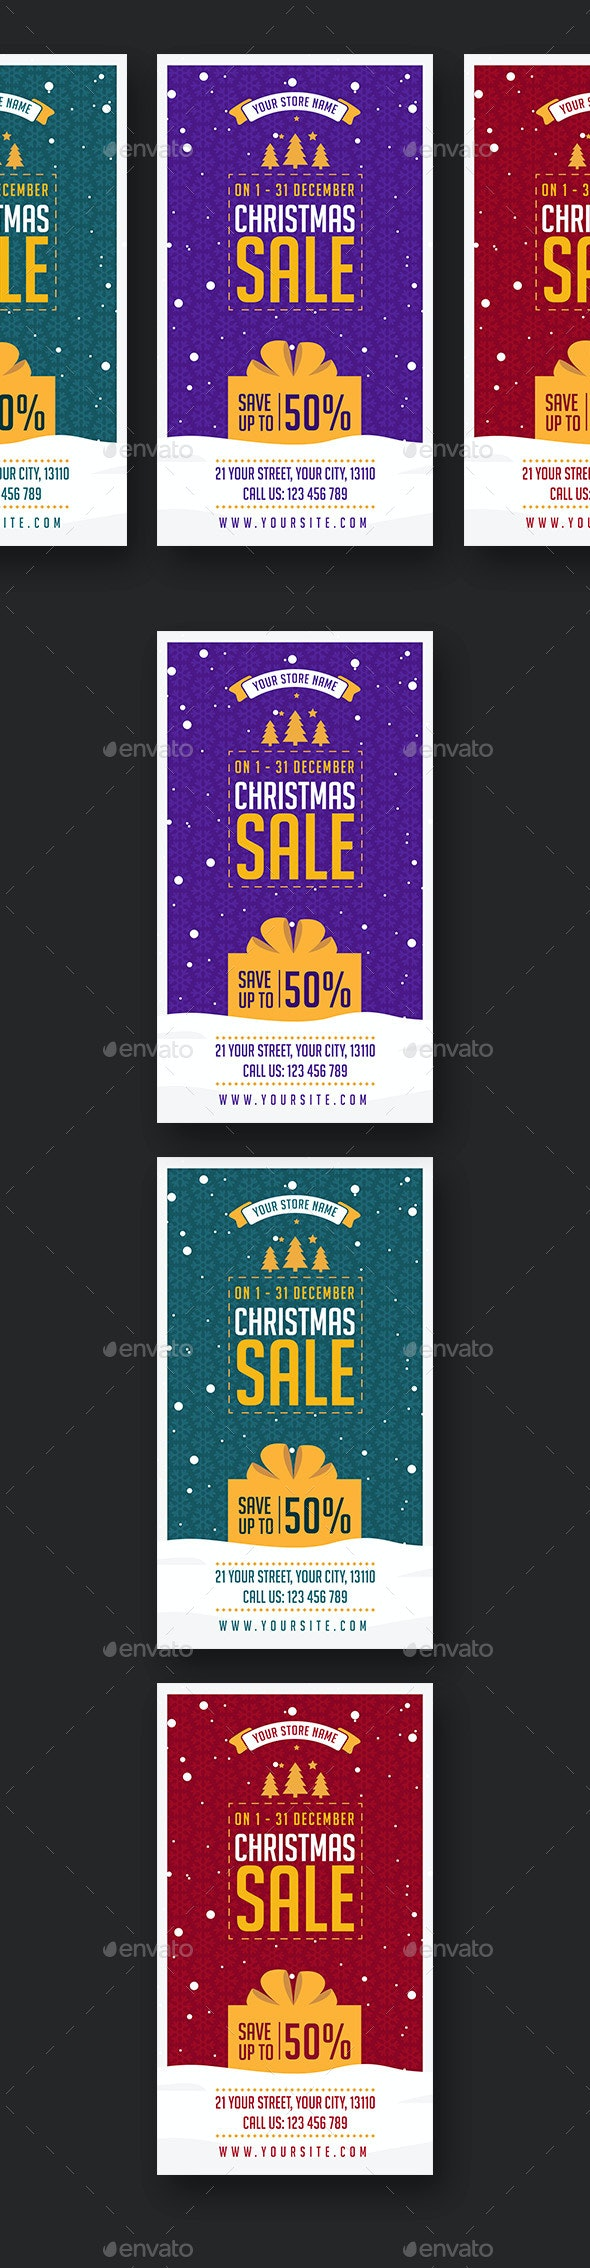 Christmas Sale Social Media Stories - Social Media Web Elements